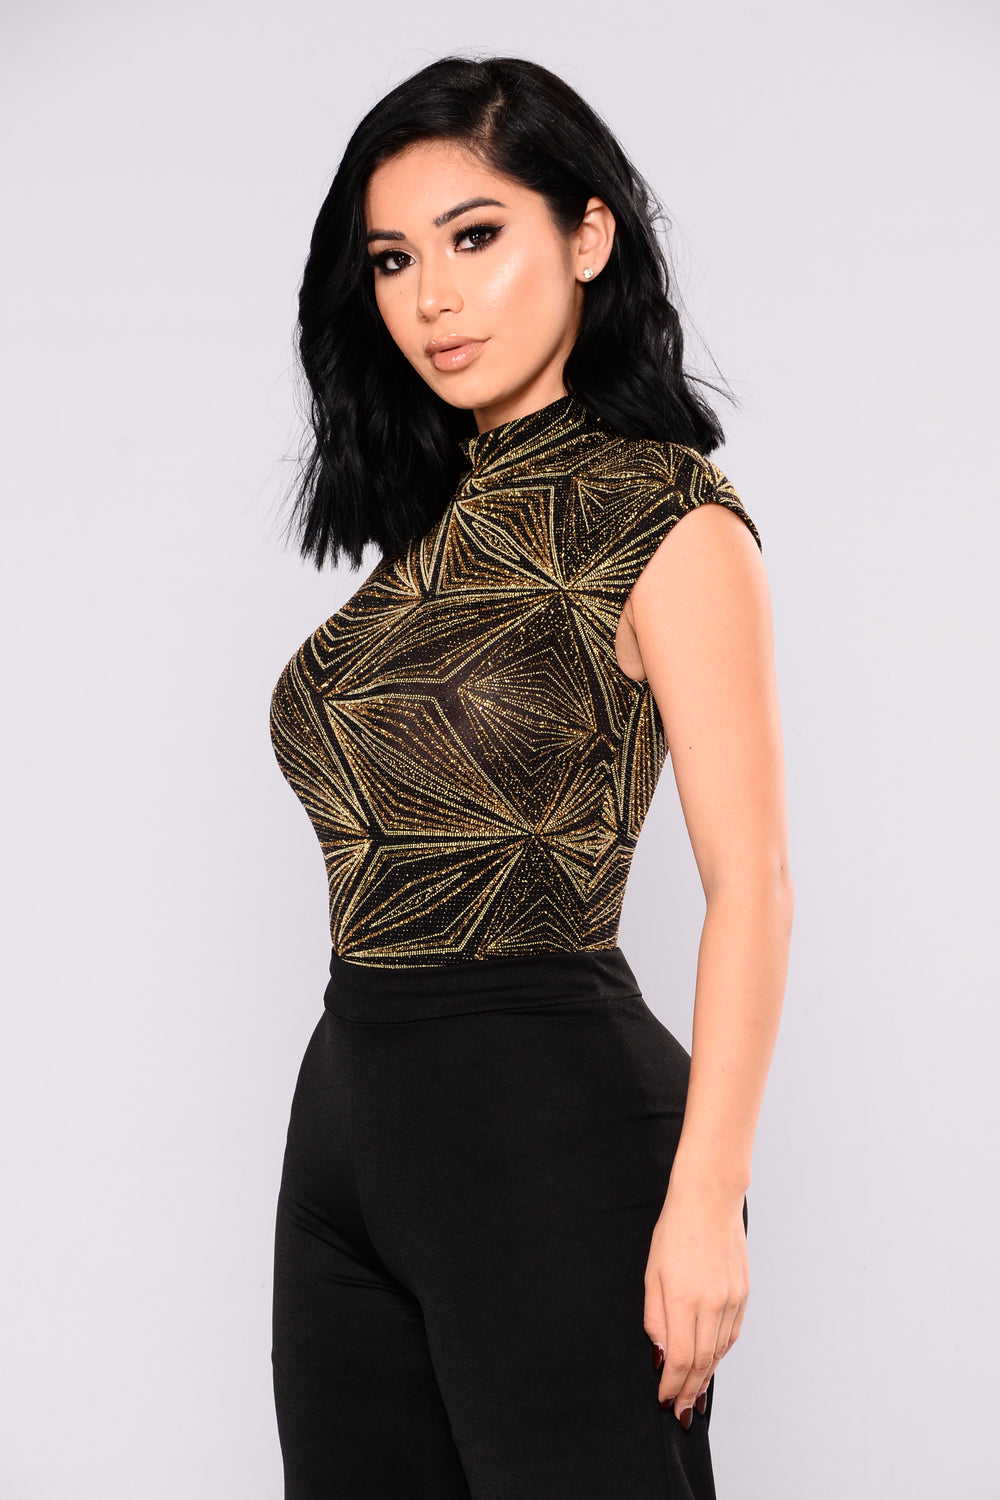 Jaylenne Metallic Bodysuit - Black/Gold